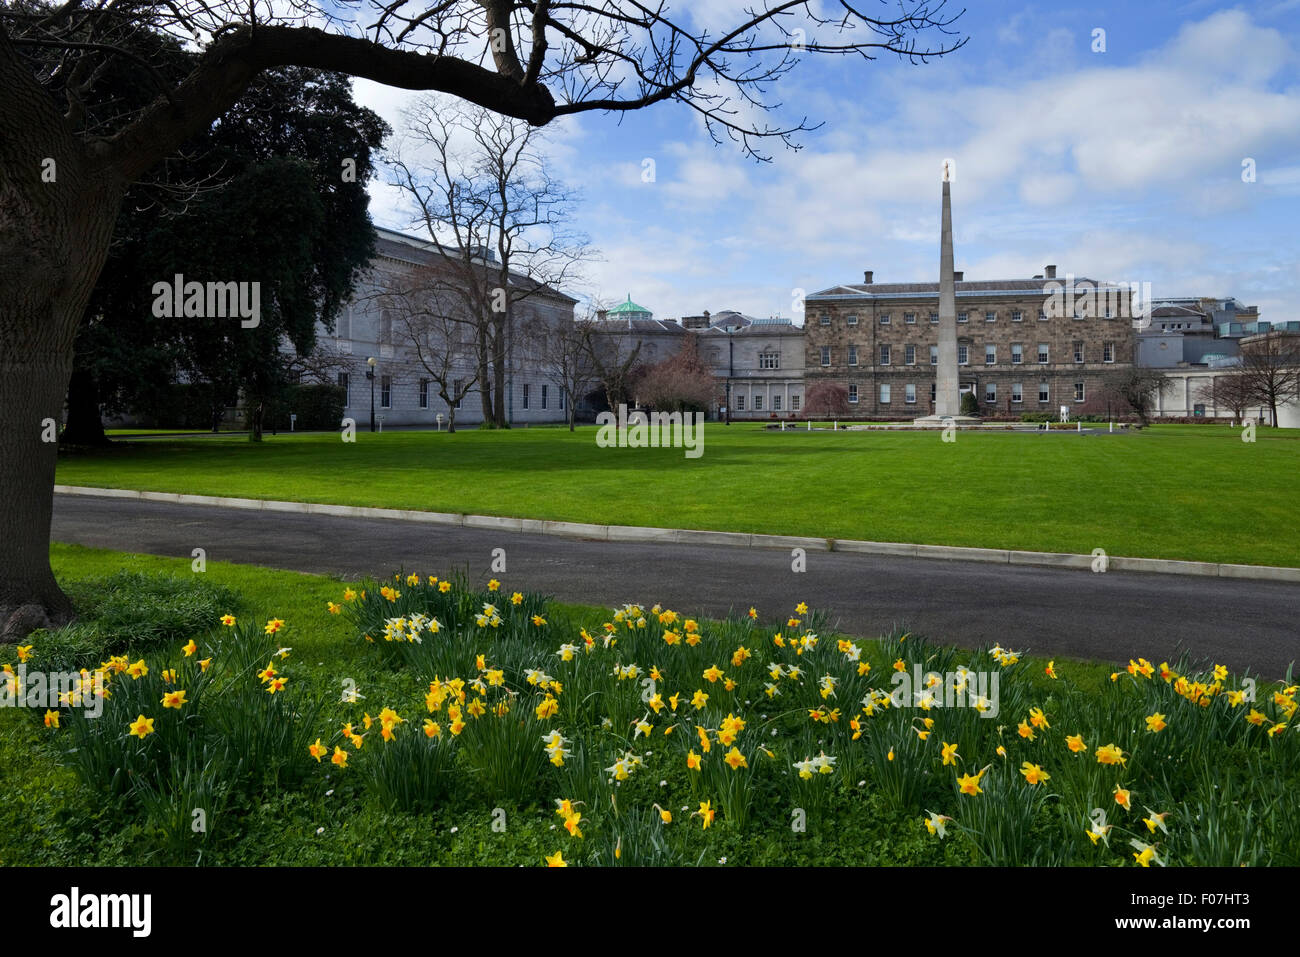 The Gardens, rear of Leinster House 1747, Where the two houses of the Irish parliament meet, Dublin City, Ireland - Stock Image